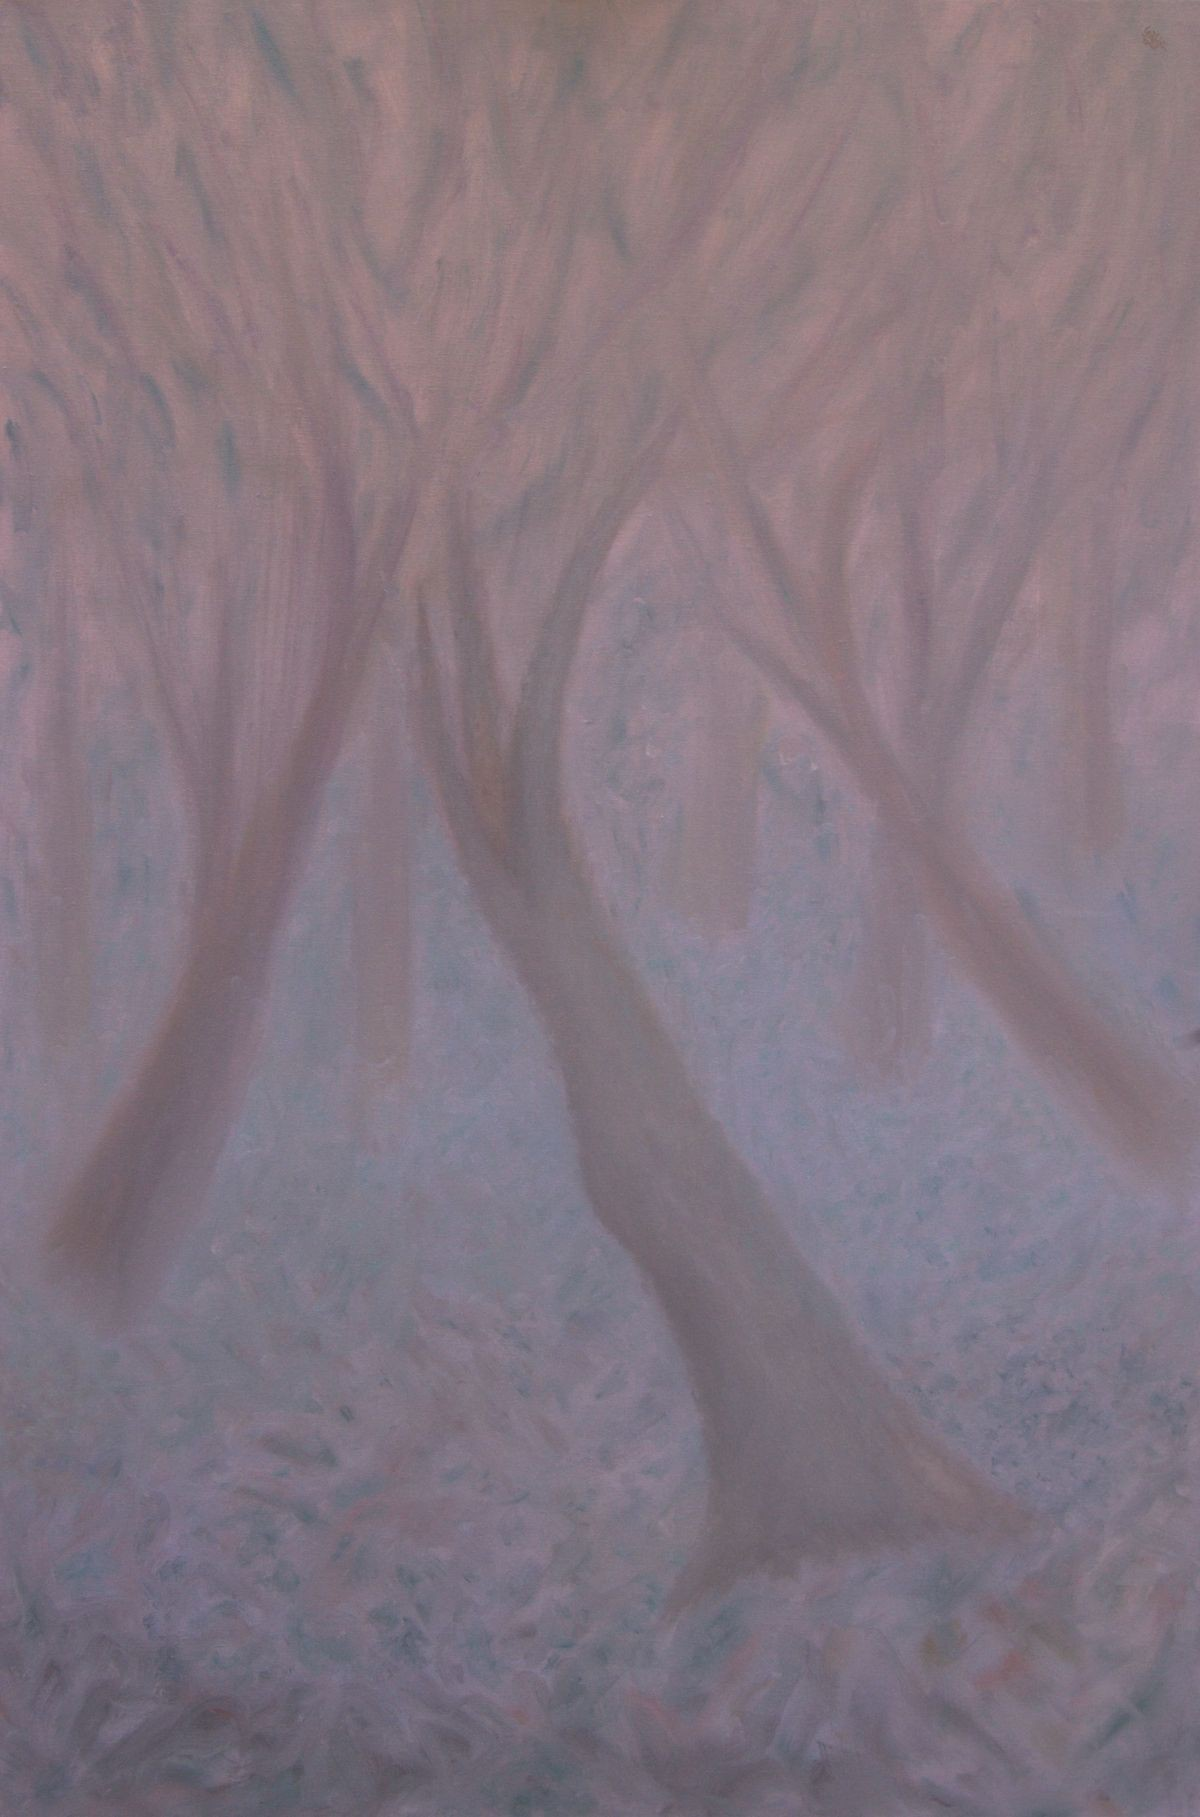 24 (oil on canvas, 80x120 cm), 2009